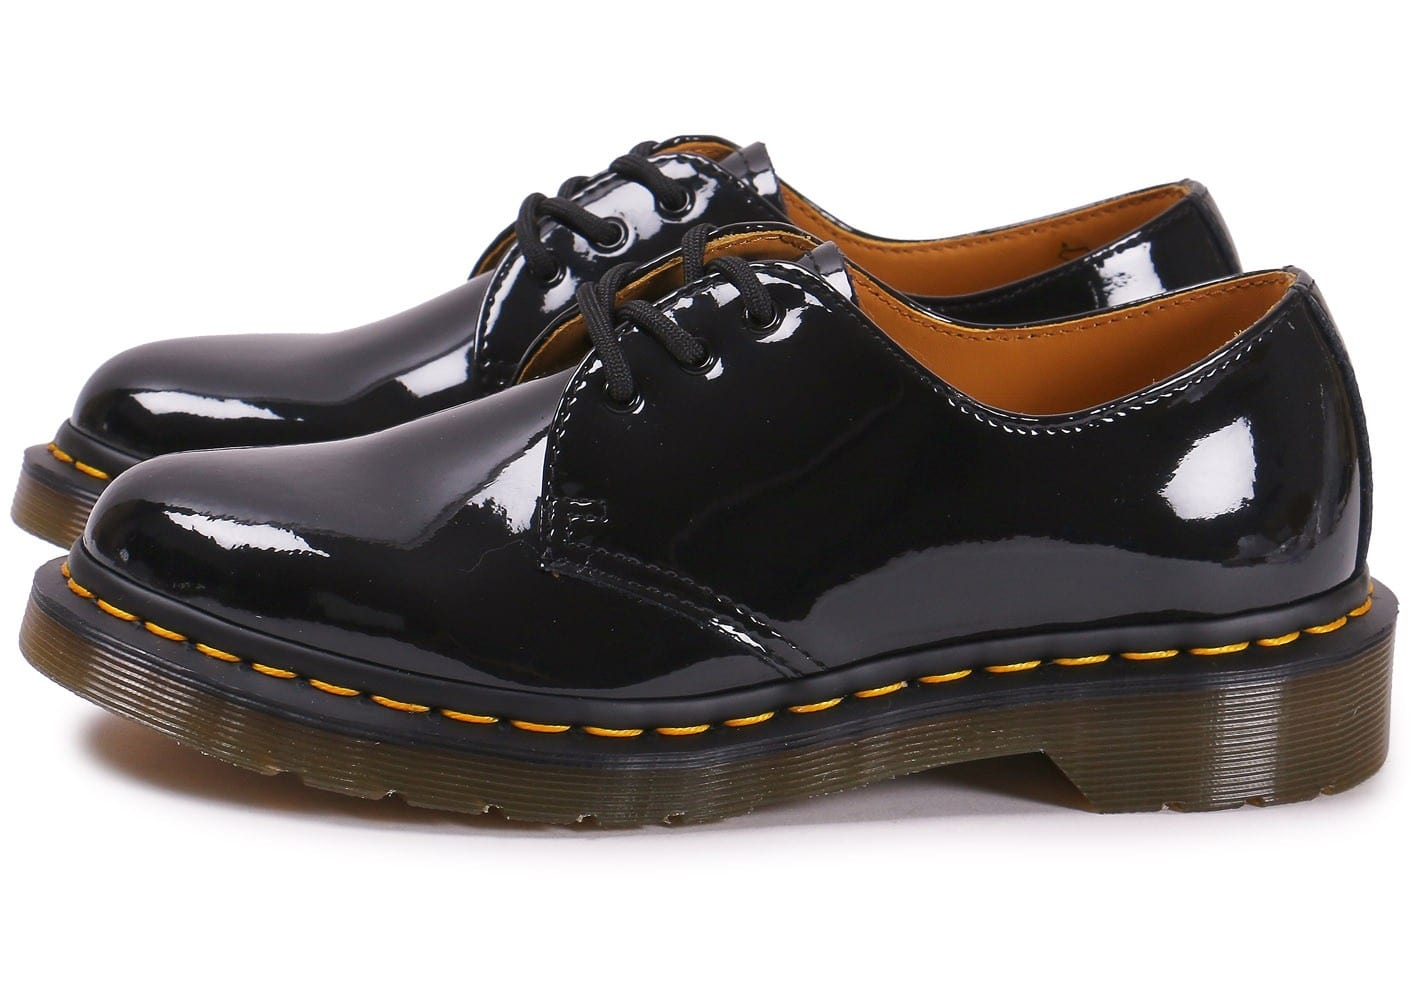 dr martens 1461 w vernis noire chaussures black friday chausport. Black Bedroom Furniture Sets. Home Design Ideas